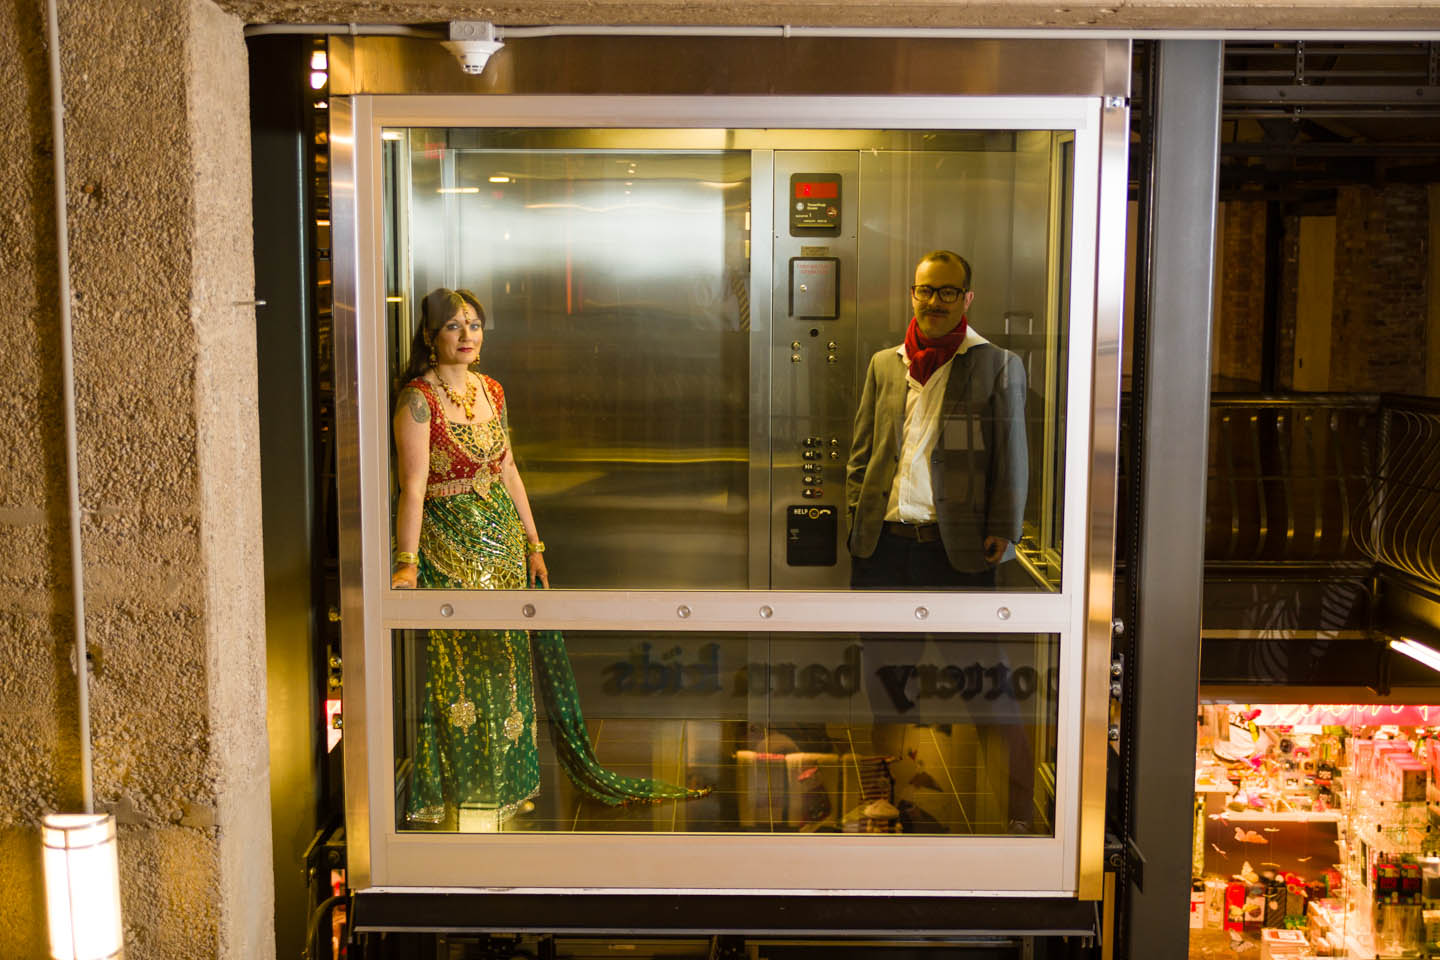 Creating the formal wedding photos in an elevator